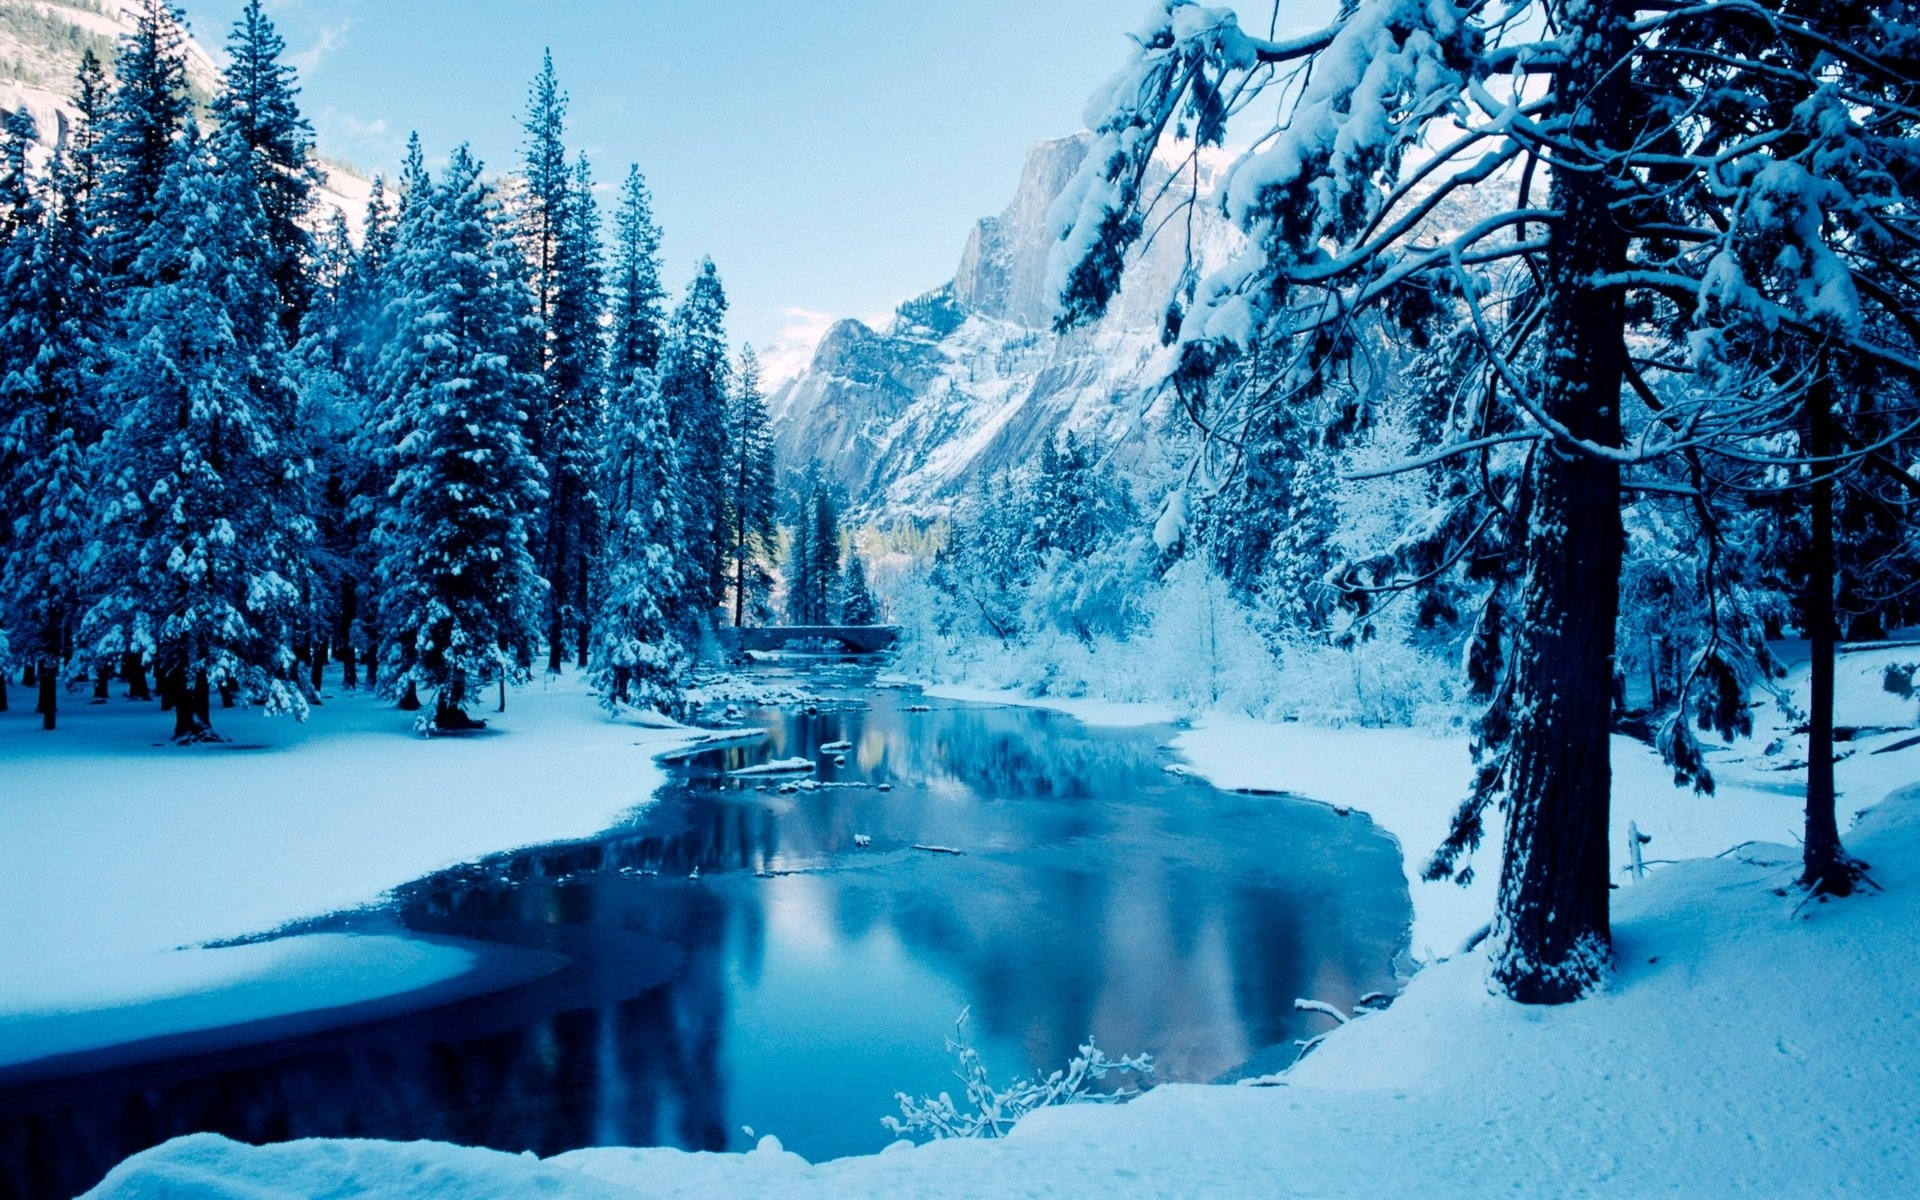 27018 download wallpaper Landscape, Winter, Rivers, Trees, Mountains, Snow screensavers and pictures for free